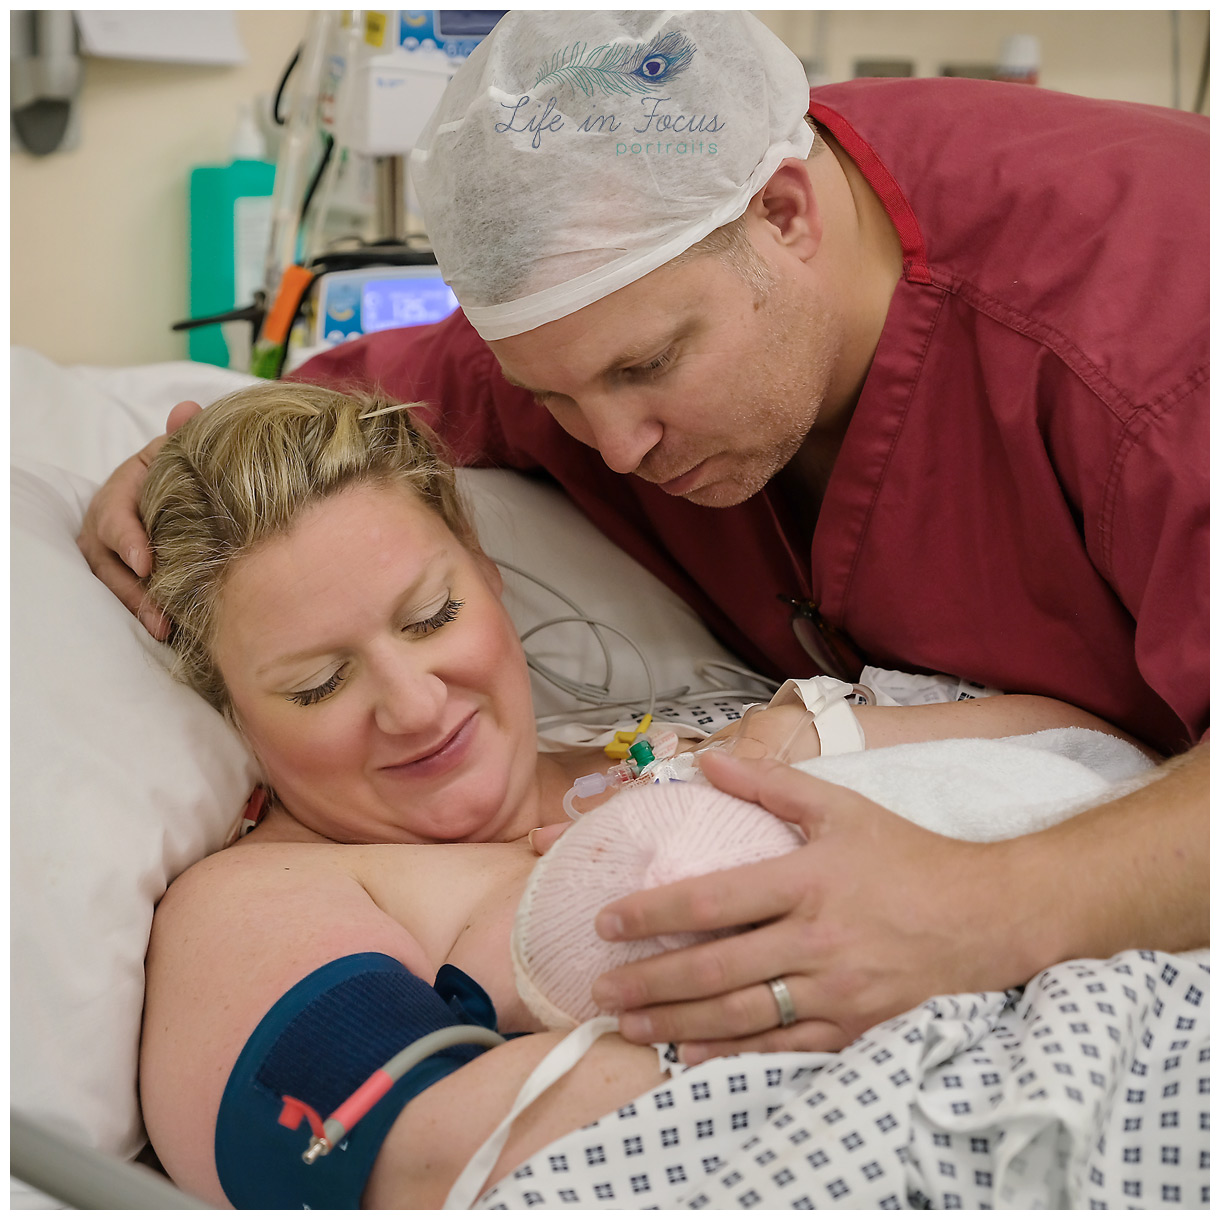 New parents cradling newborn after c-section delivery Life in Focus Portraits birth photographer Glasgow hospital